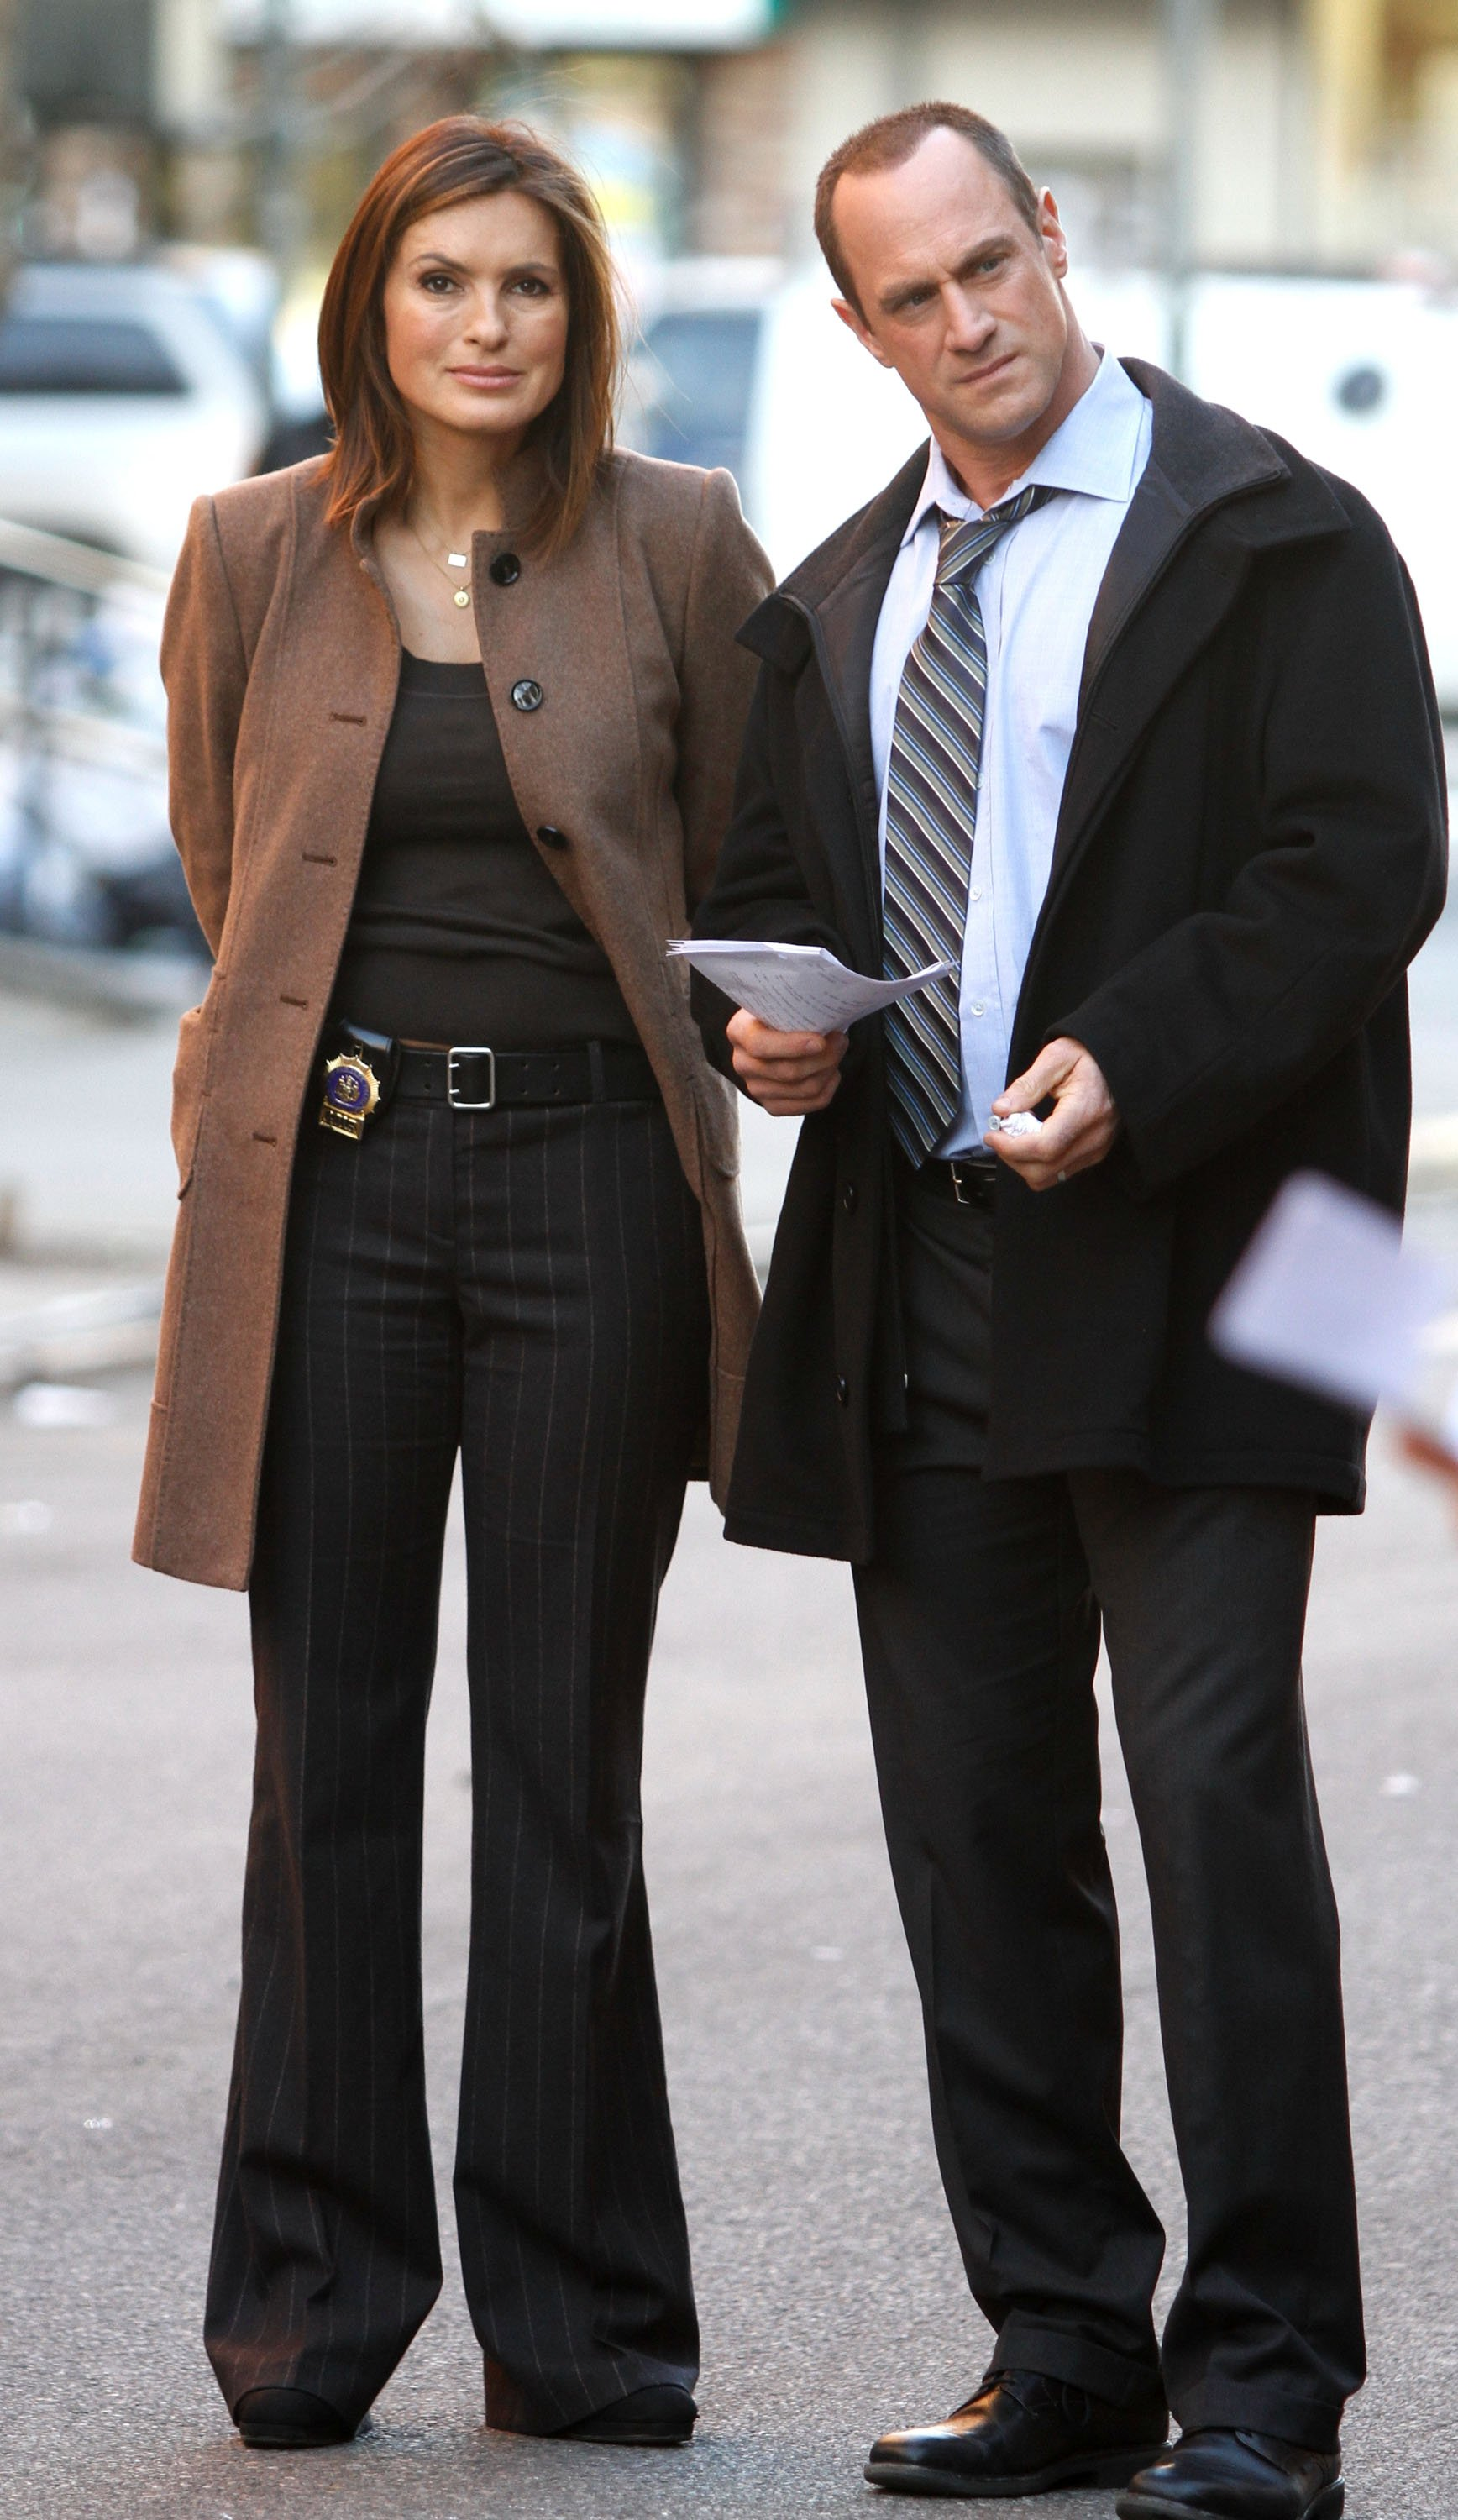 """Mariska Hargitay and Chris Meloni photographed while working on """"Law and Order: SVU"""" in New York City on March 17, 2010   Photo: Getty Images"""